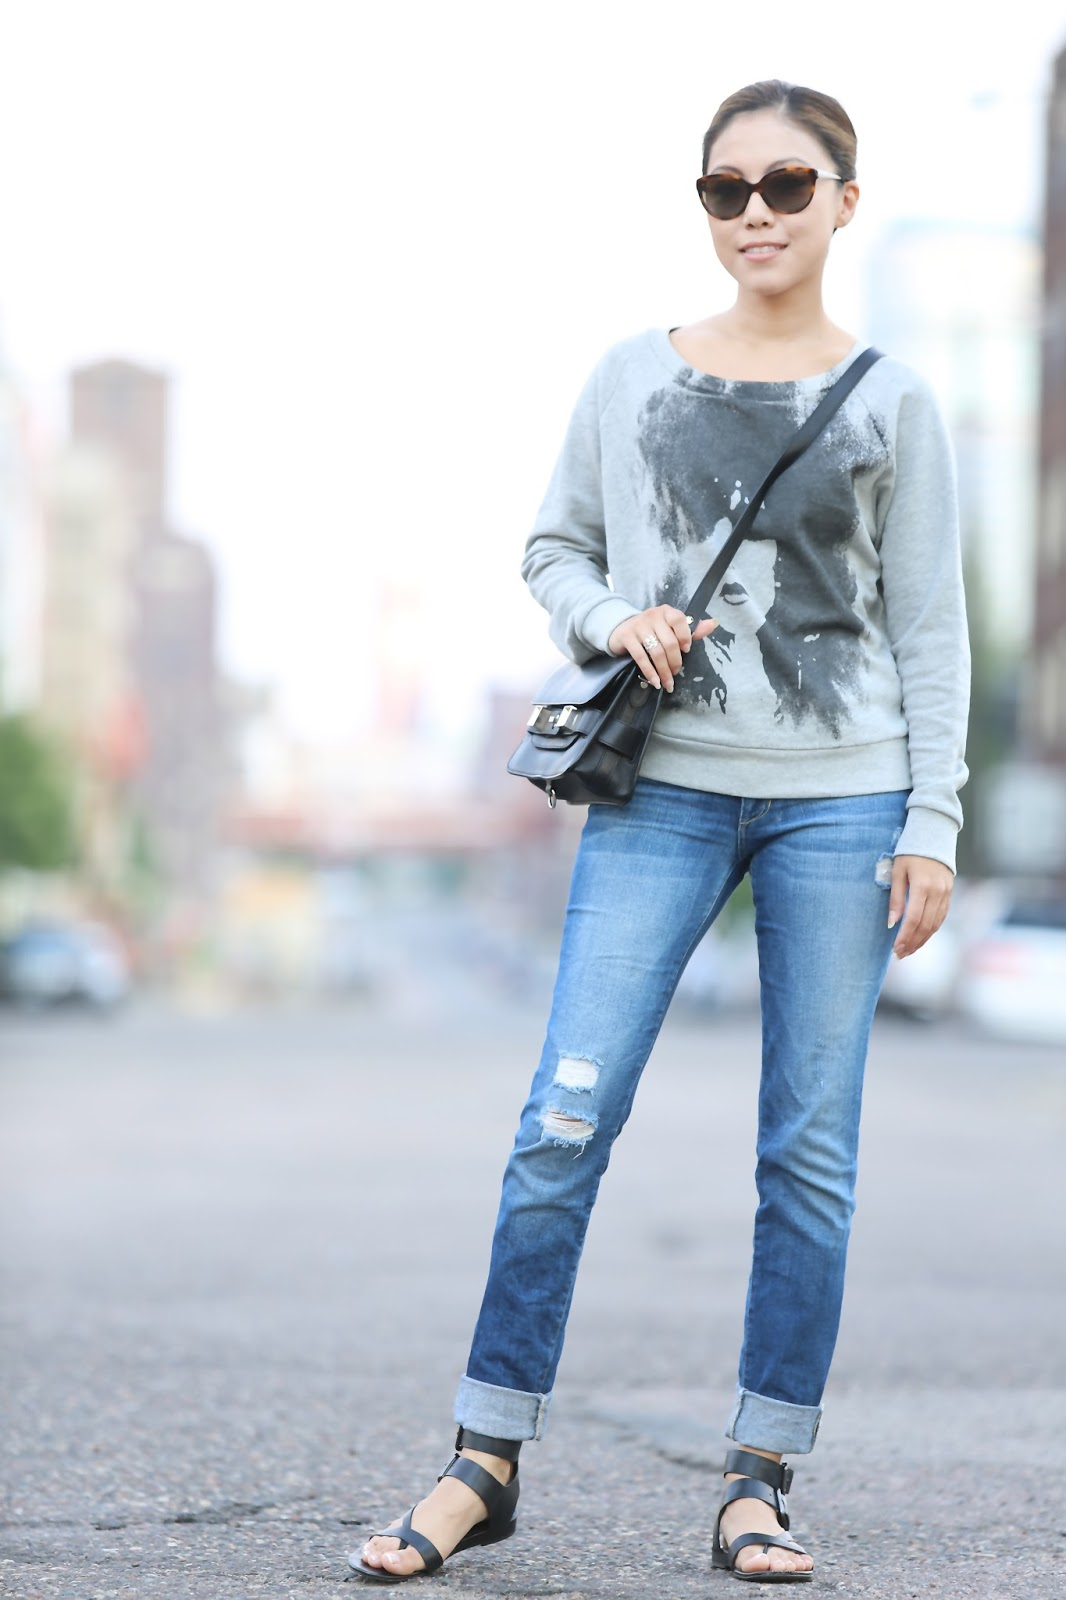 7bf991fea8 Uuber Casual: Slouchy jeans + Comfy sweatshirt